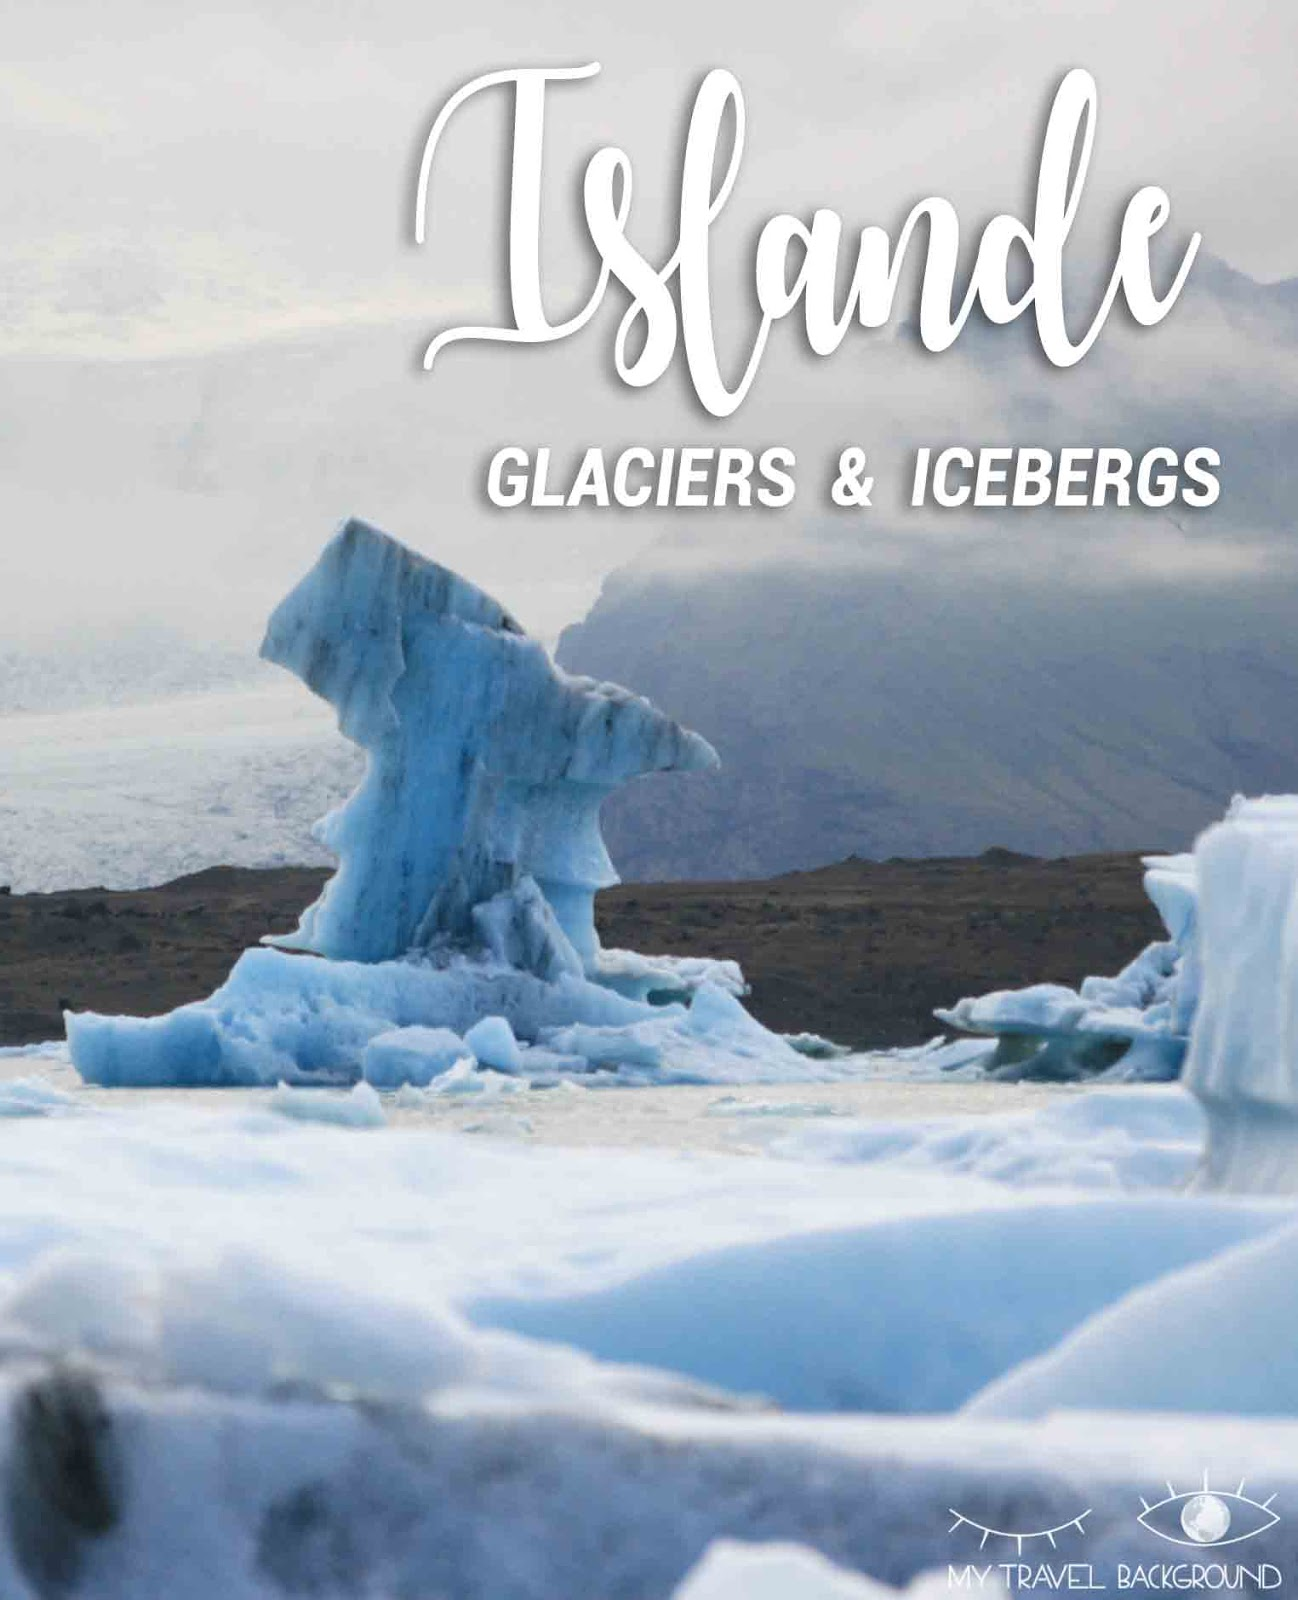 My Travel Background : Glaciers et icebergs dans le Sud de l'Islande